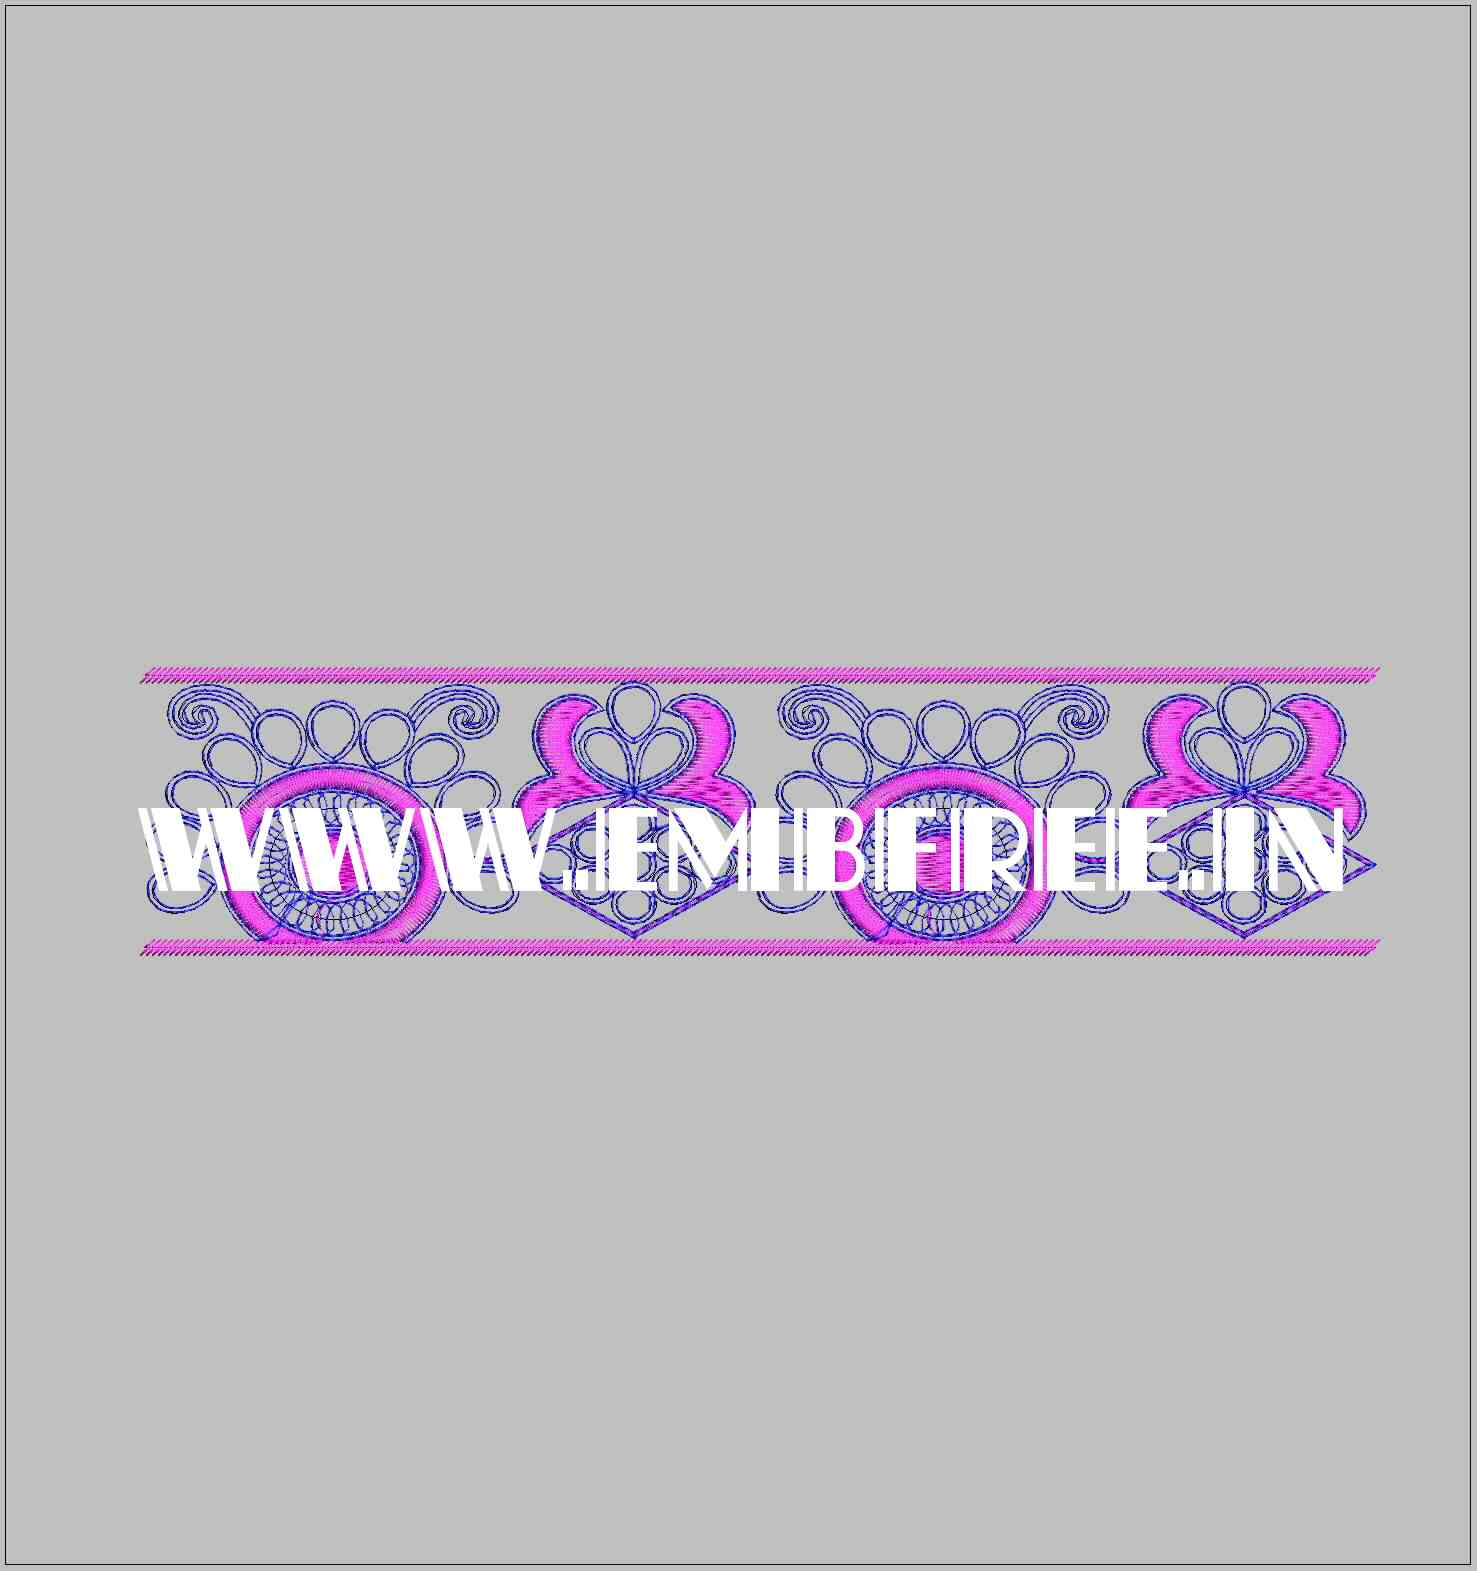 Less Embroidery Design Less Codding